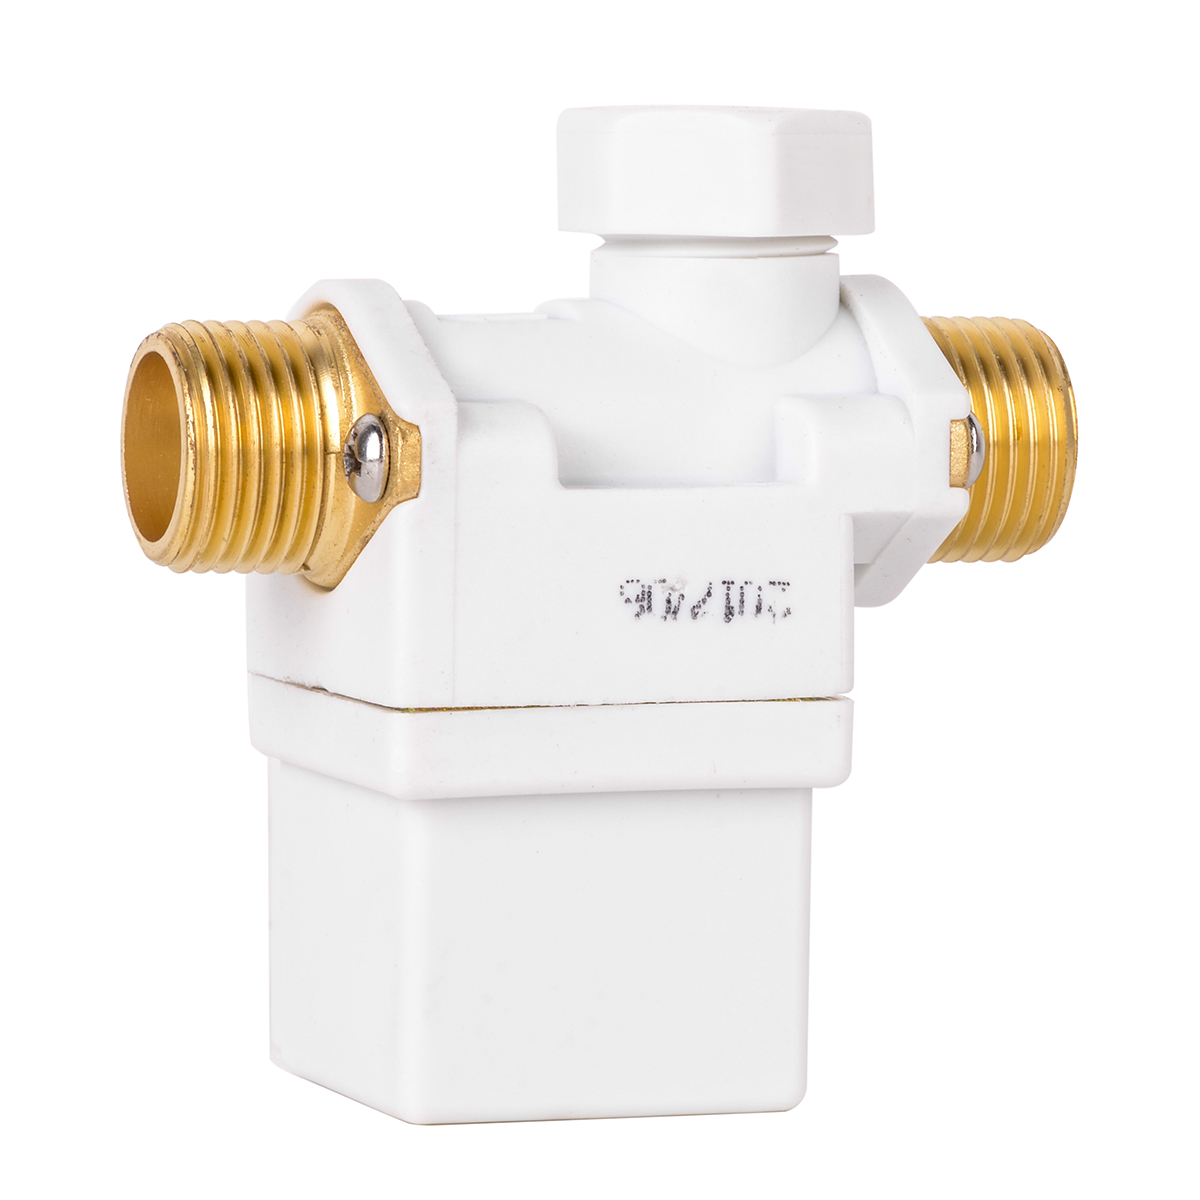 1pc micro electric solenoid valve ac 220v practical water air nc 1pc micro electric solenoid valve ac 220v practical water air nc normally closed diaphragm valve for 12 hose mayitr in valve from home improvement on ccuart Image collections